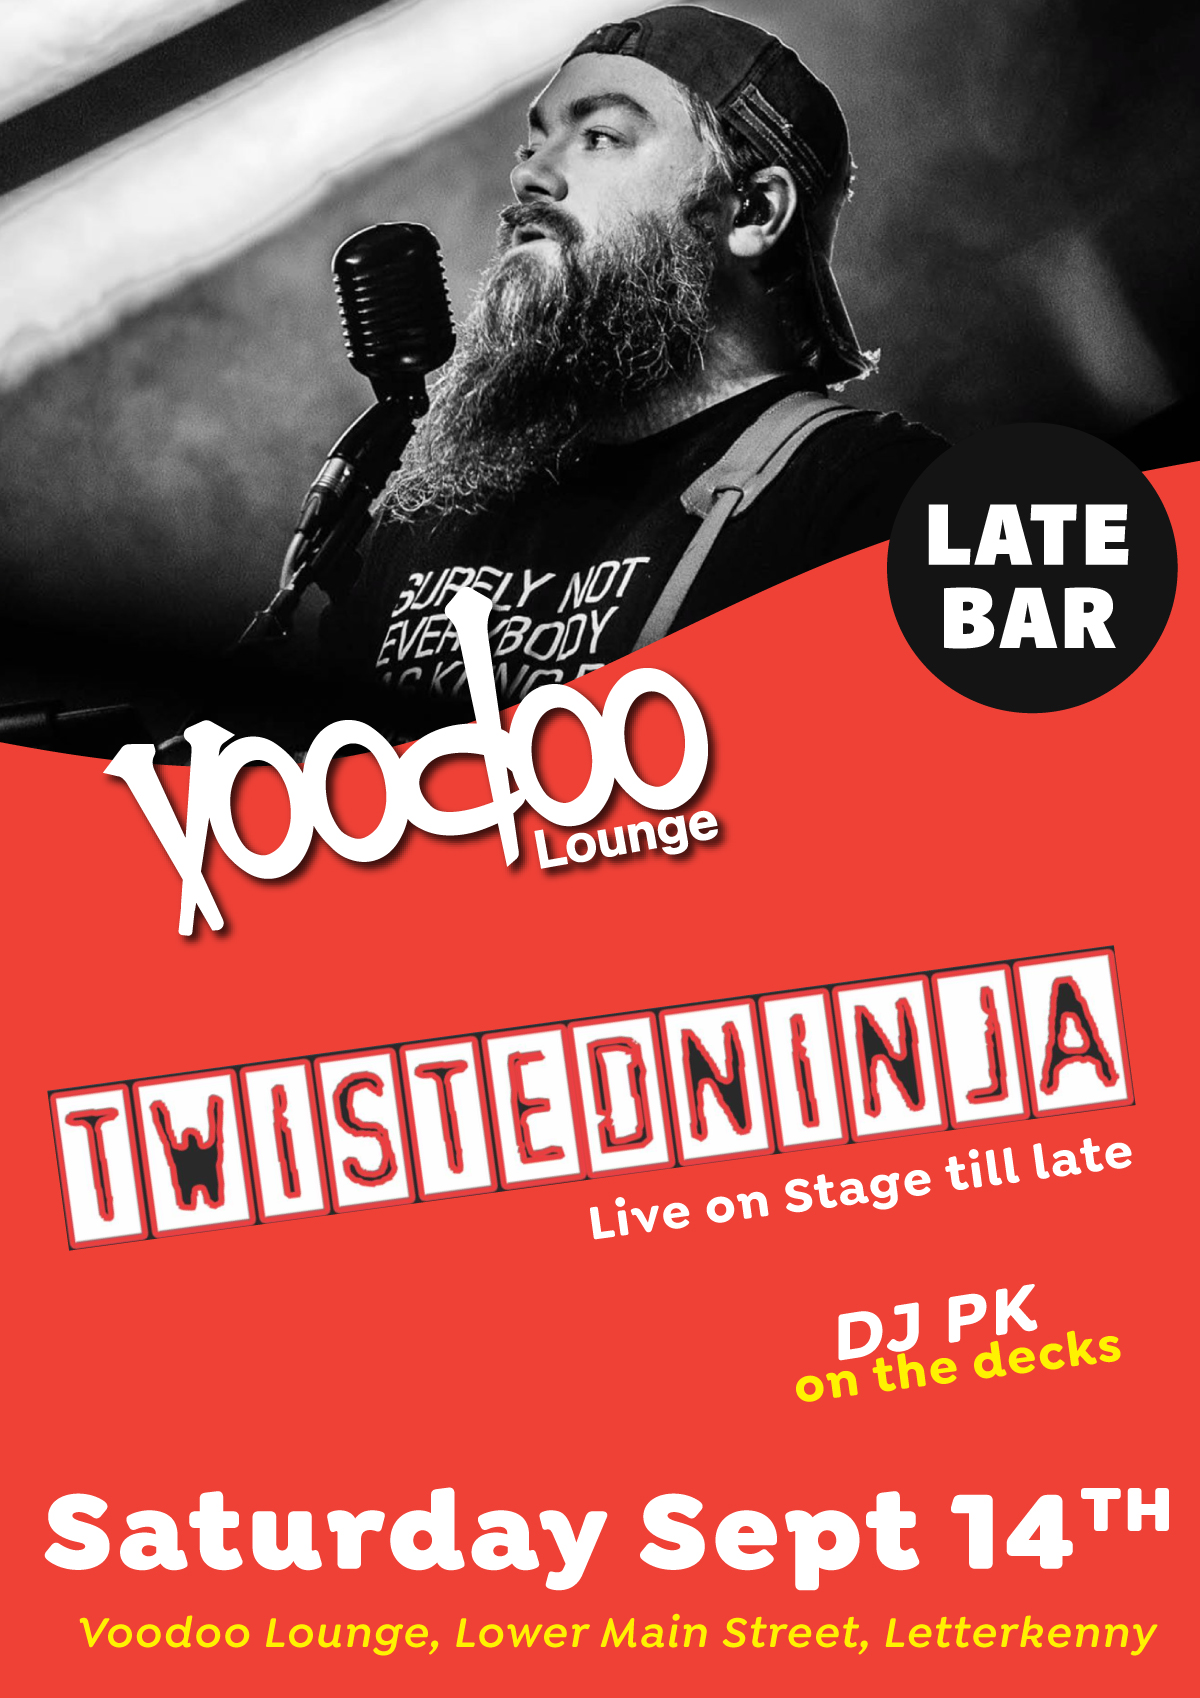 voodoo-venue---SATURDAY---twisted-ninja---sat-sept-14-2019.jpg